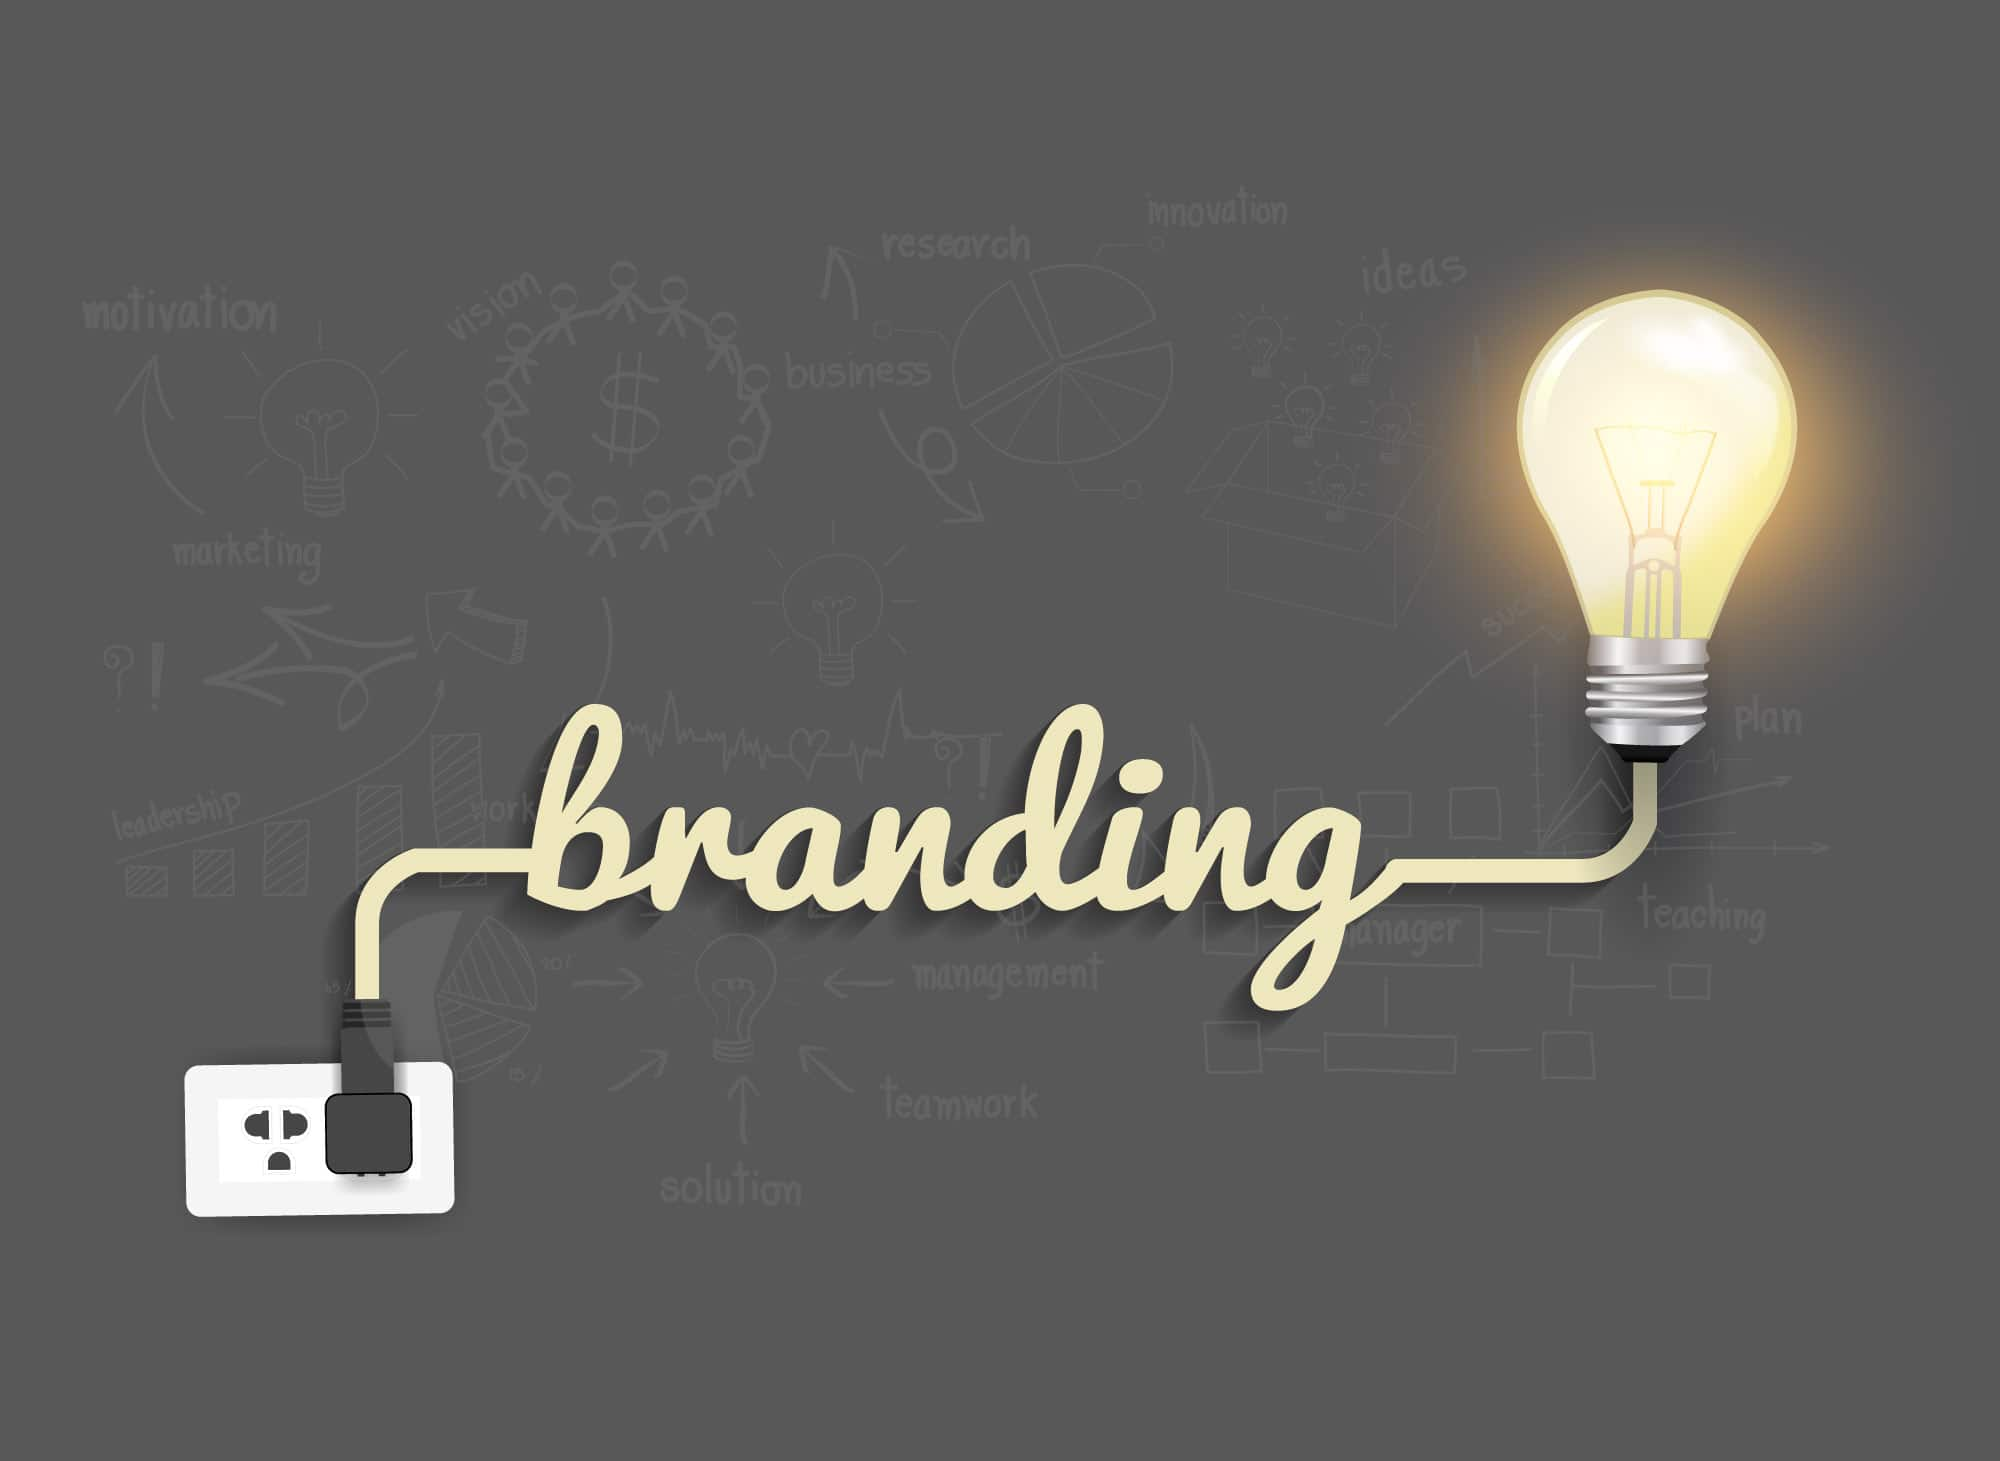 Four Frequently Neglected Elements of Branding You Can't Afford to Ignore